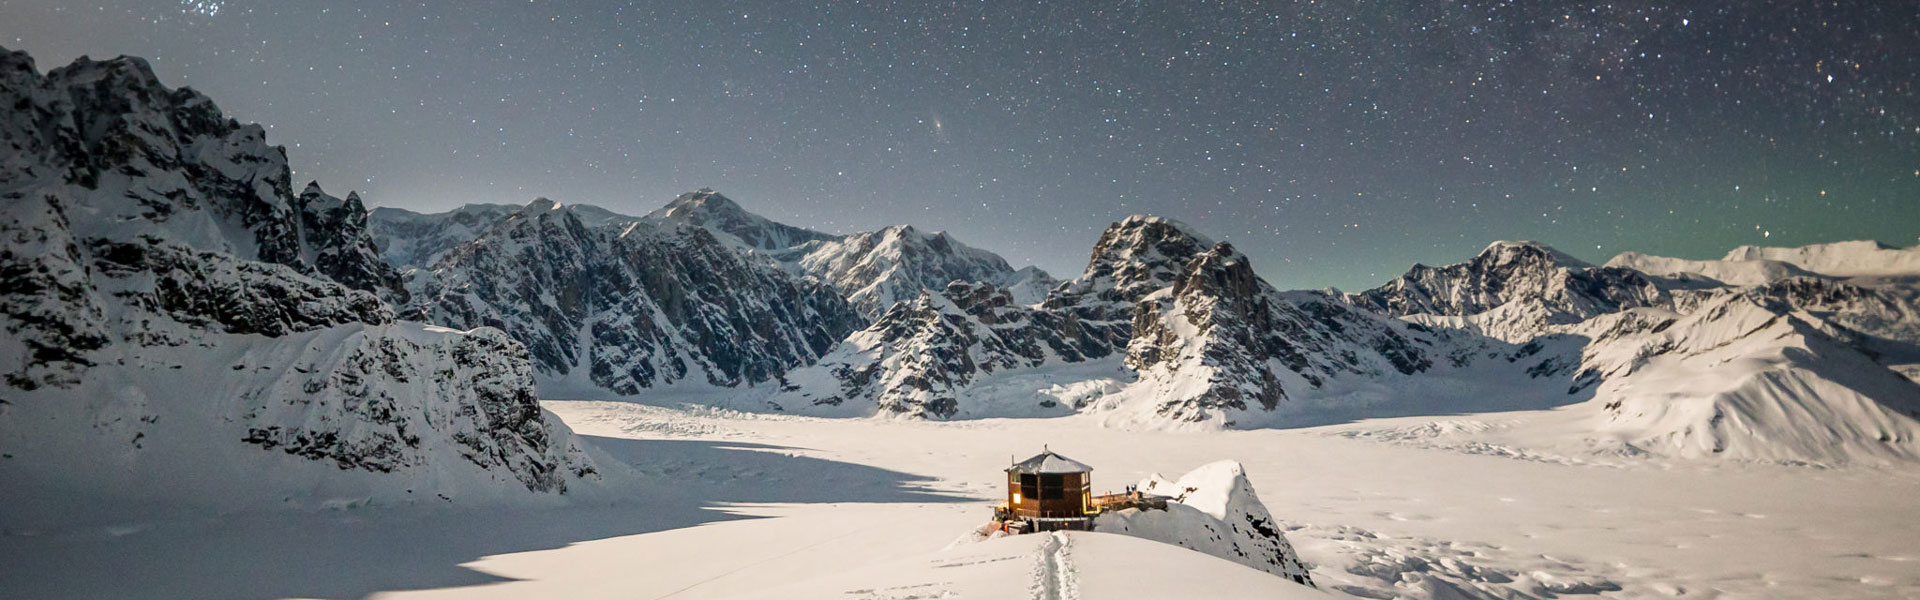 Alaska Luxury Wilderness Lodges | Sheldon Chalet on Denali